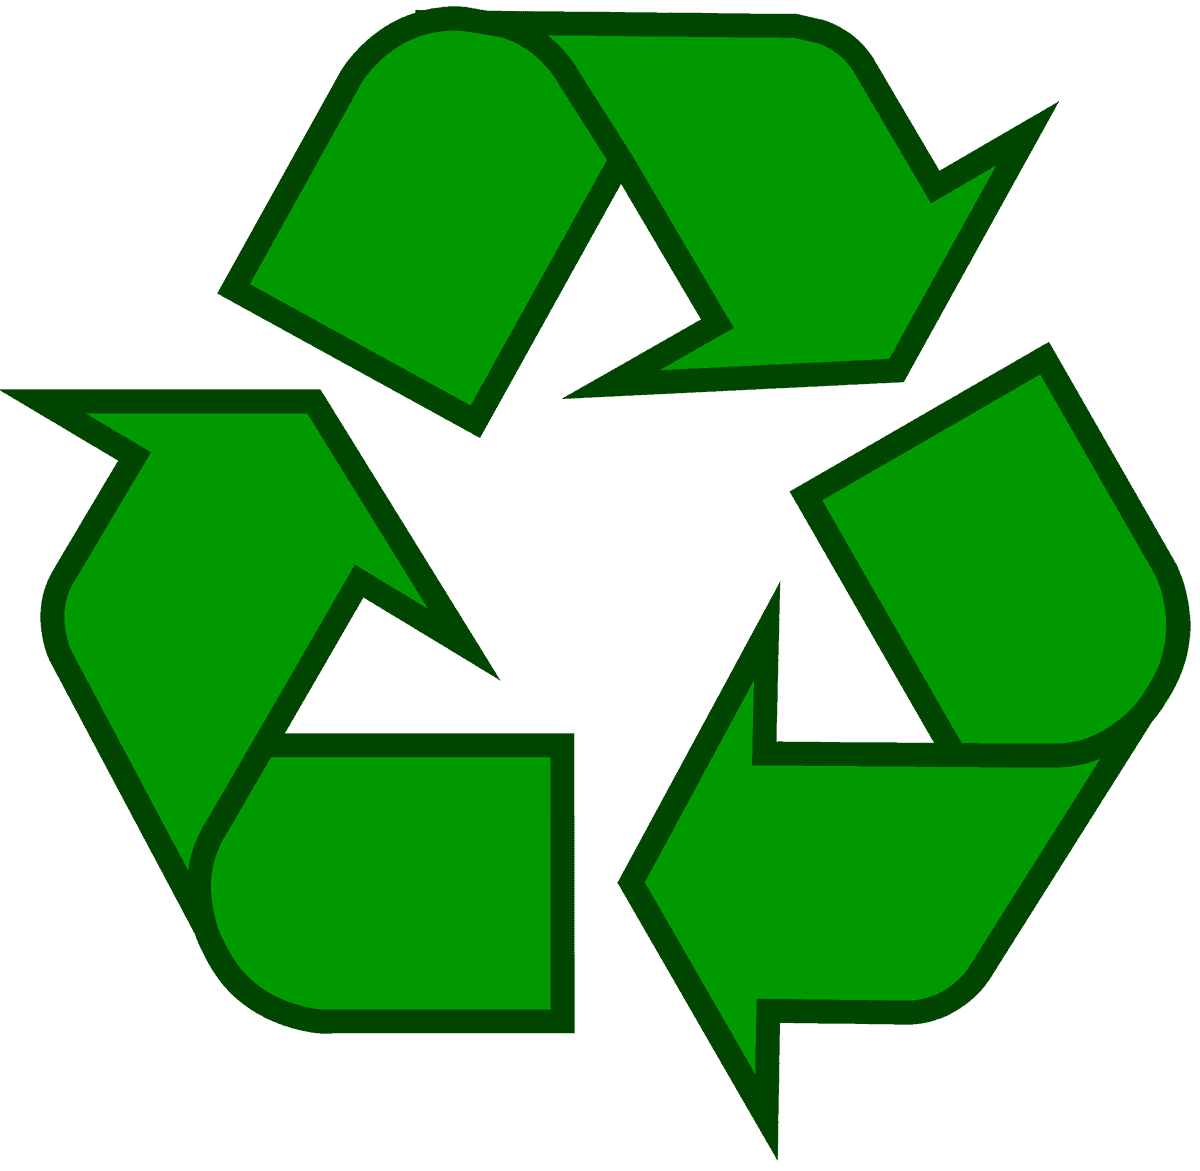 graphic about Recycling Sign Printable known as Recycling Emblem - Down load the Primary Recycle Brand